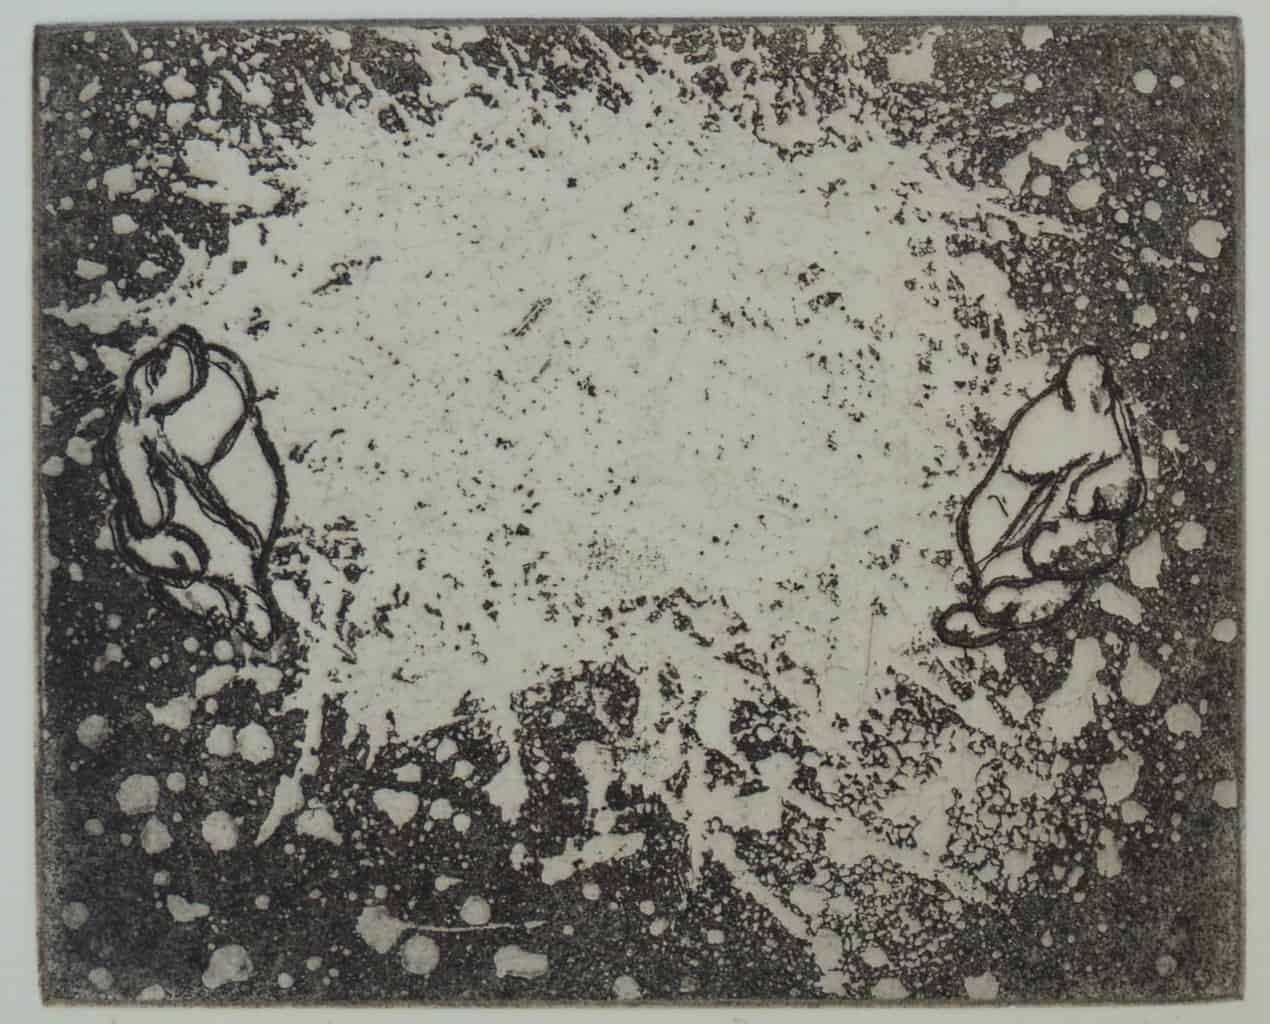 """""""Welcome"""" - image from the """"Hands"""" series featuring various stances of gesturing hands. Original print etching by painter-printmaker Marina Kim"""